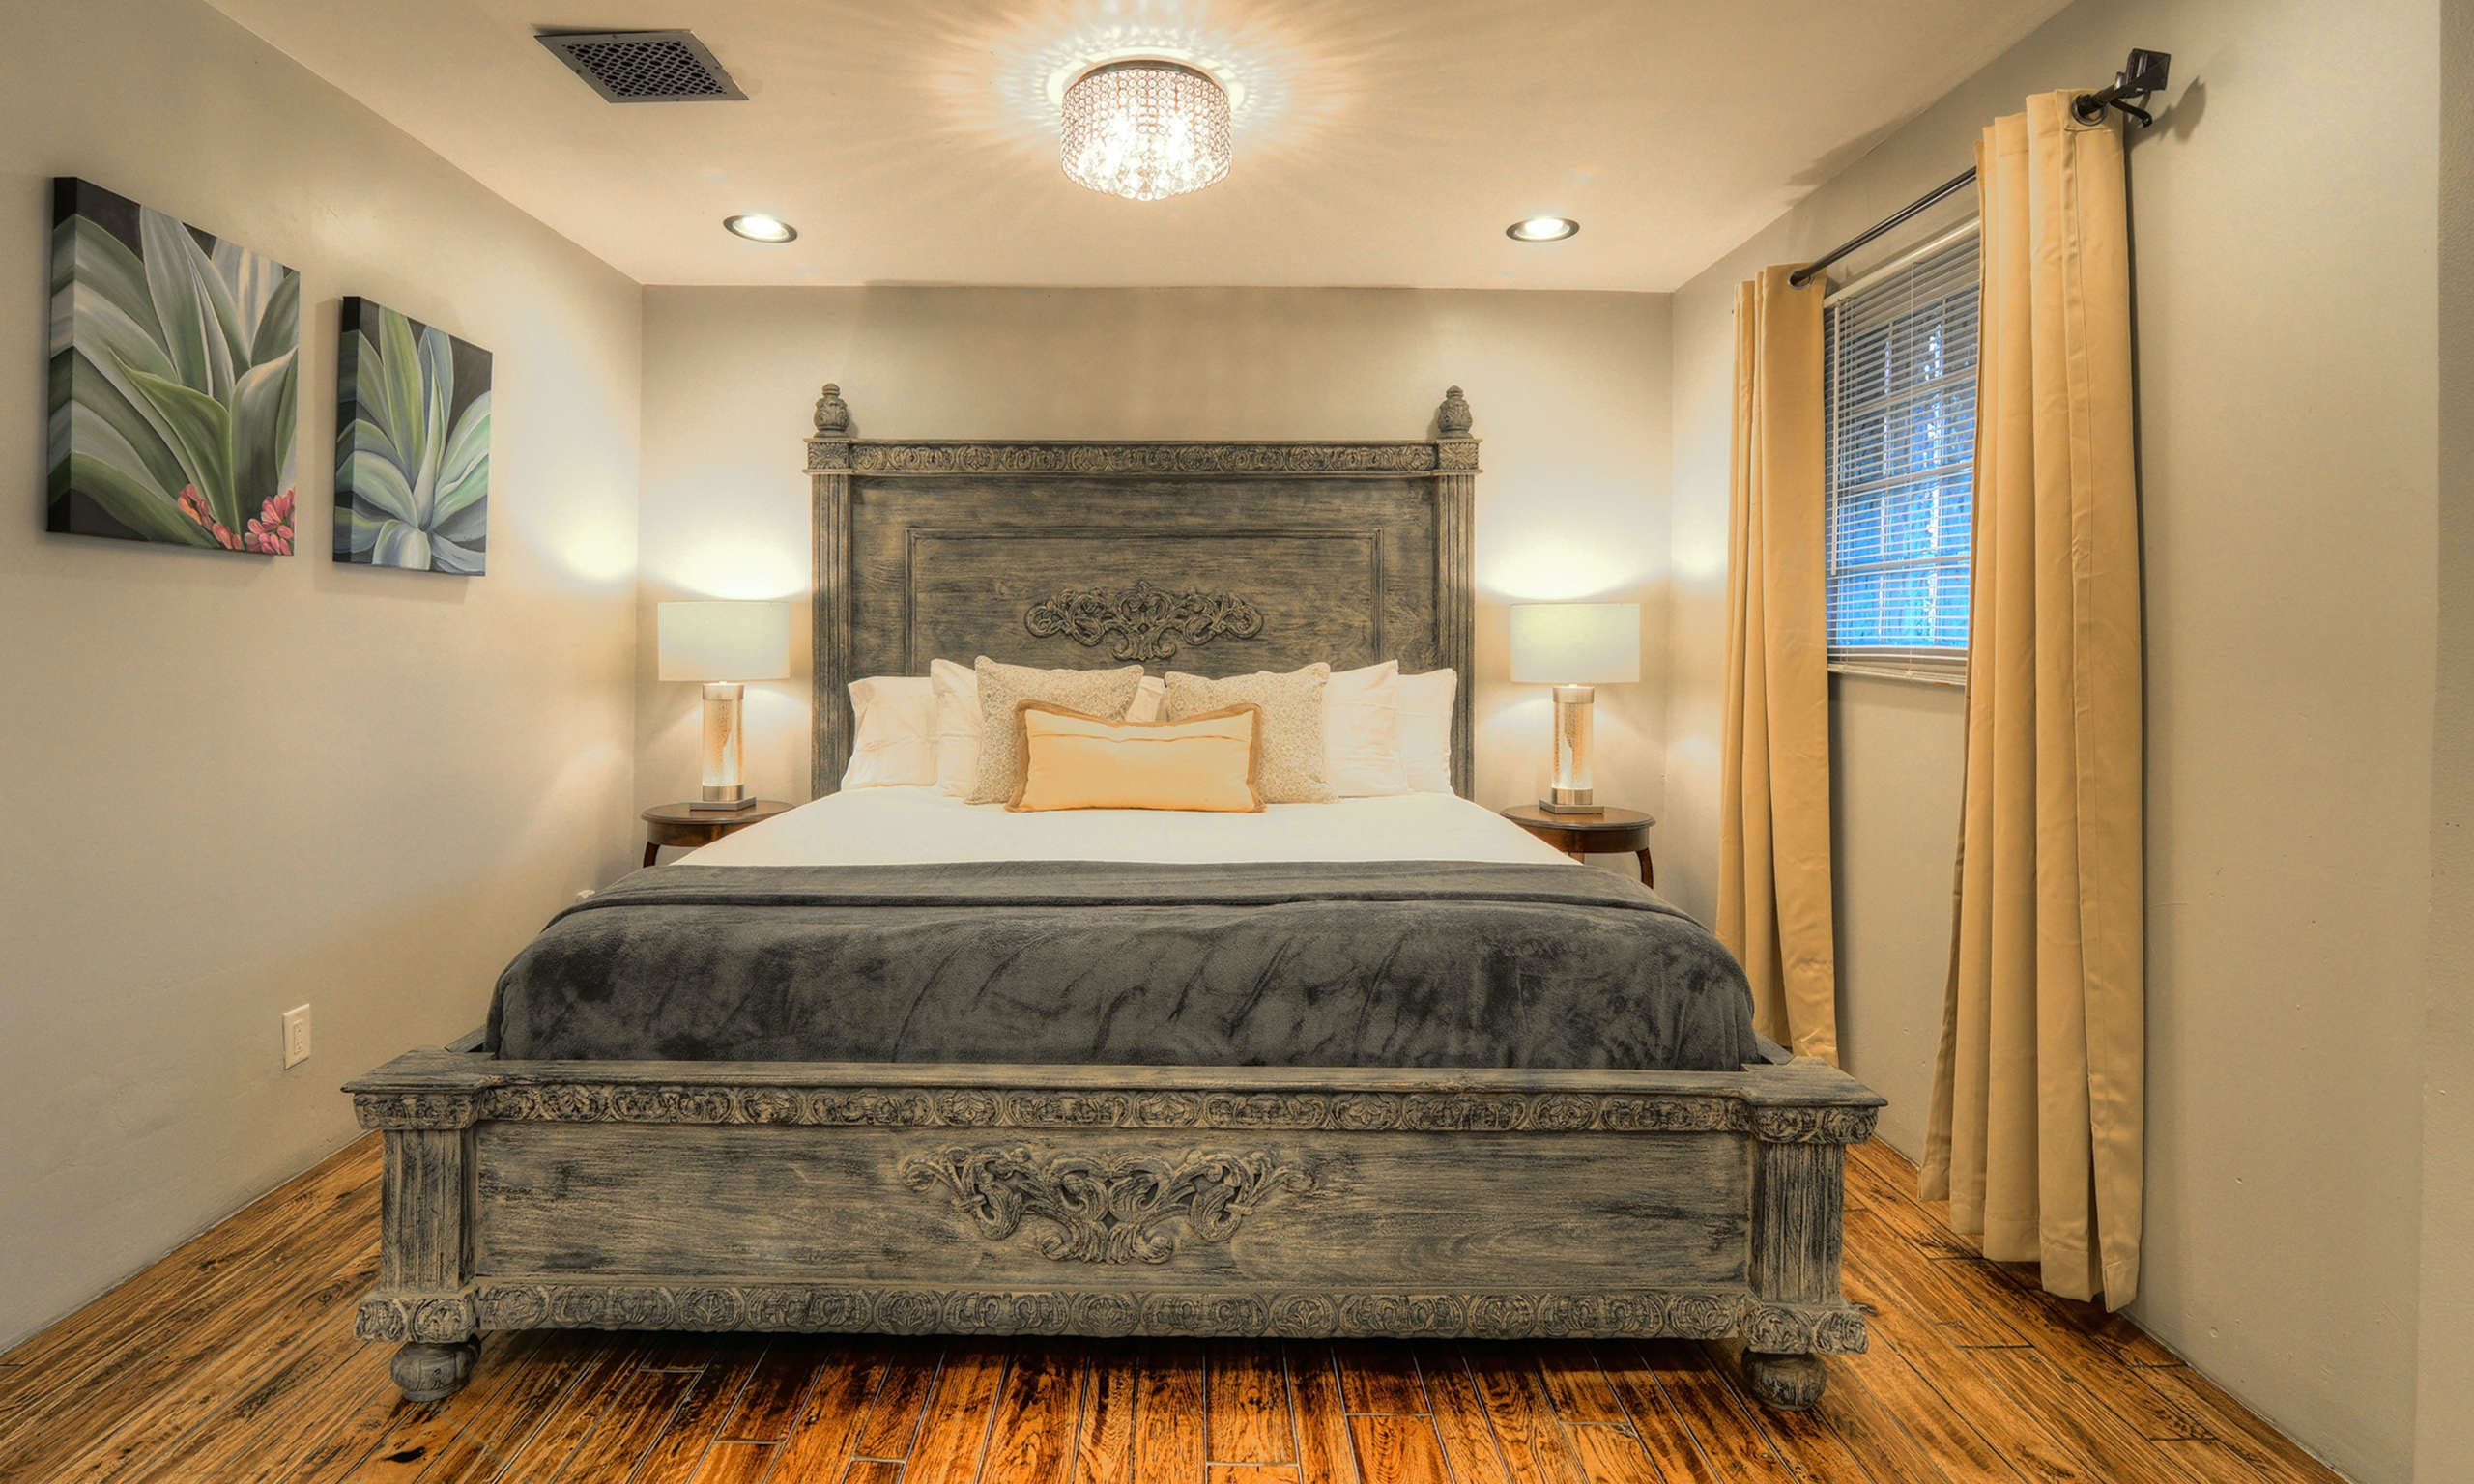 Winery Suites of Scottsdale